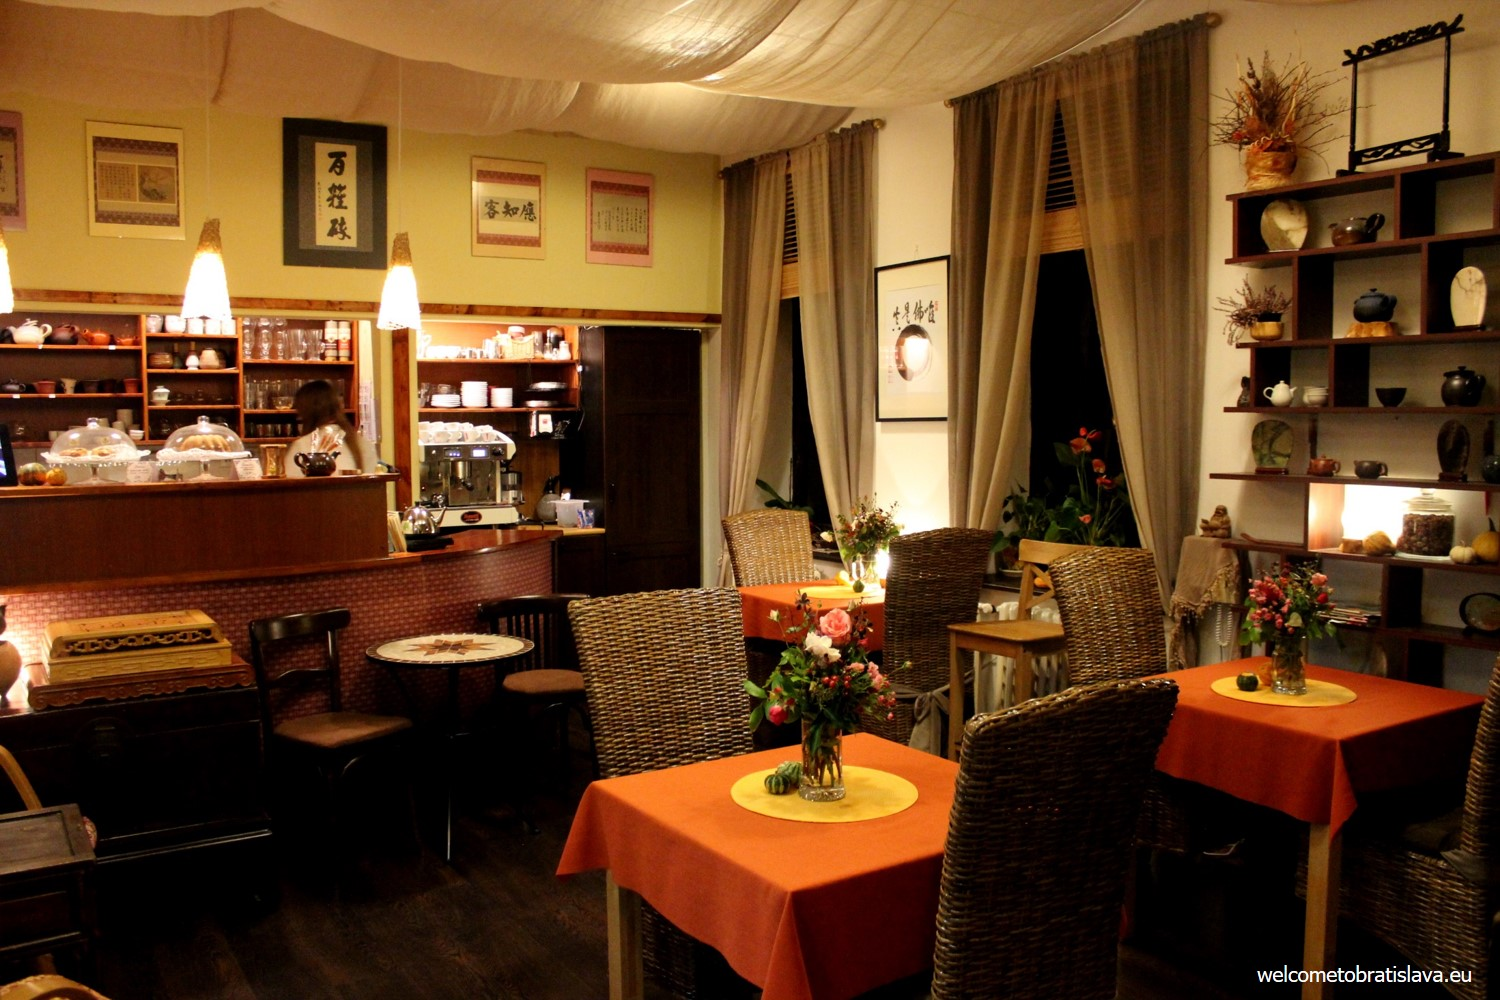 The interior of Čaj Kafé is furnished with wooden and bamboo furniture in natural color tones and complimented by several original ancient Chinese accessories.